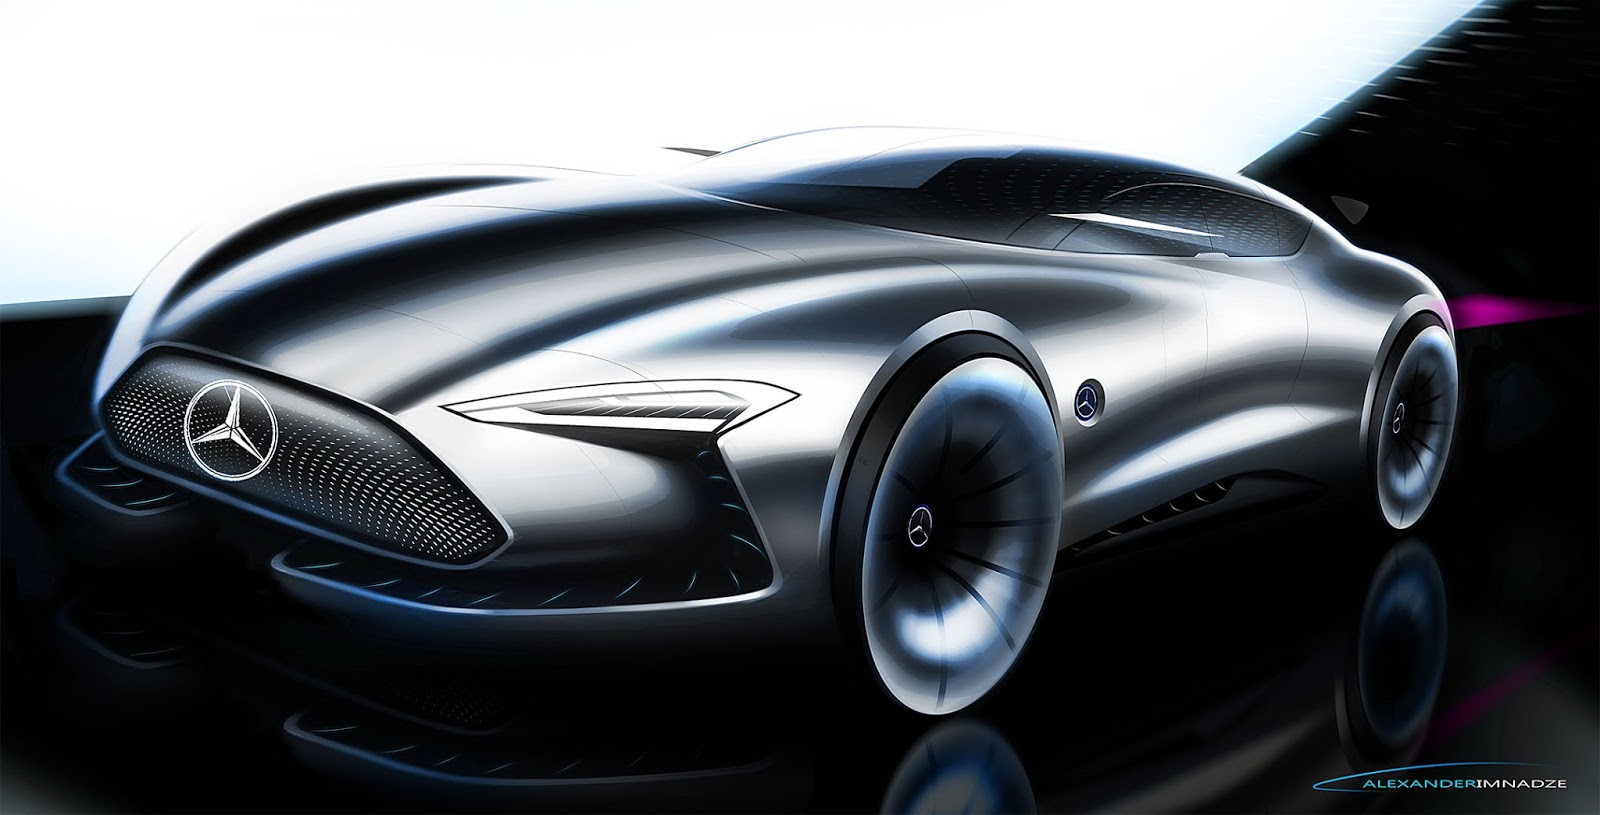 Concept car design for Coupe architecture